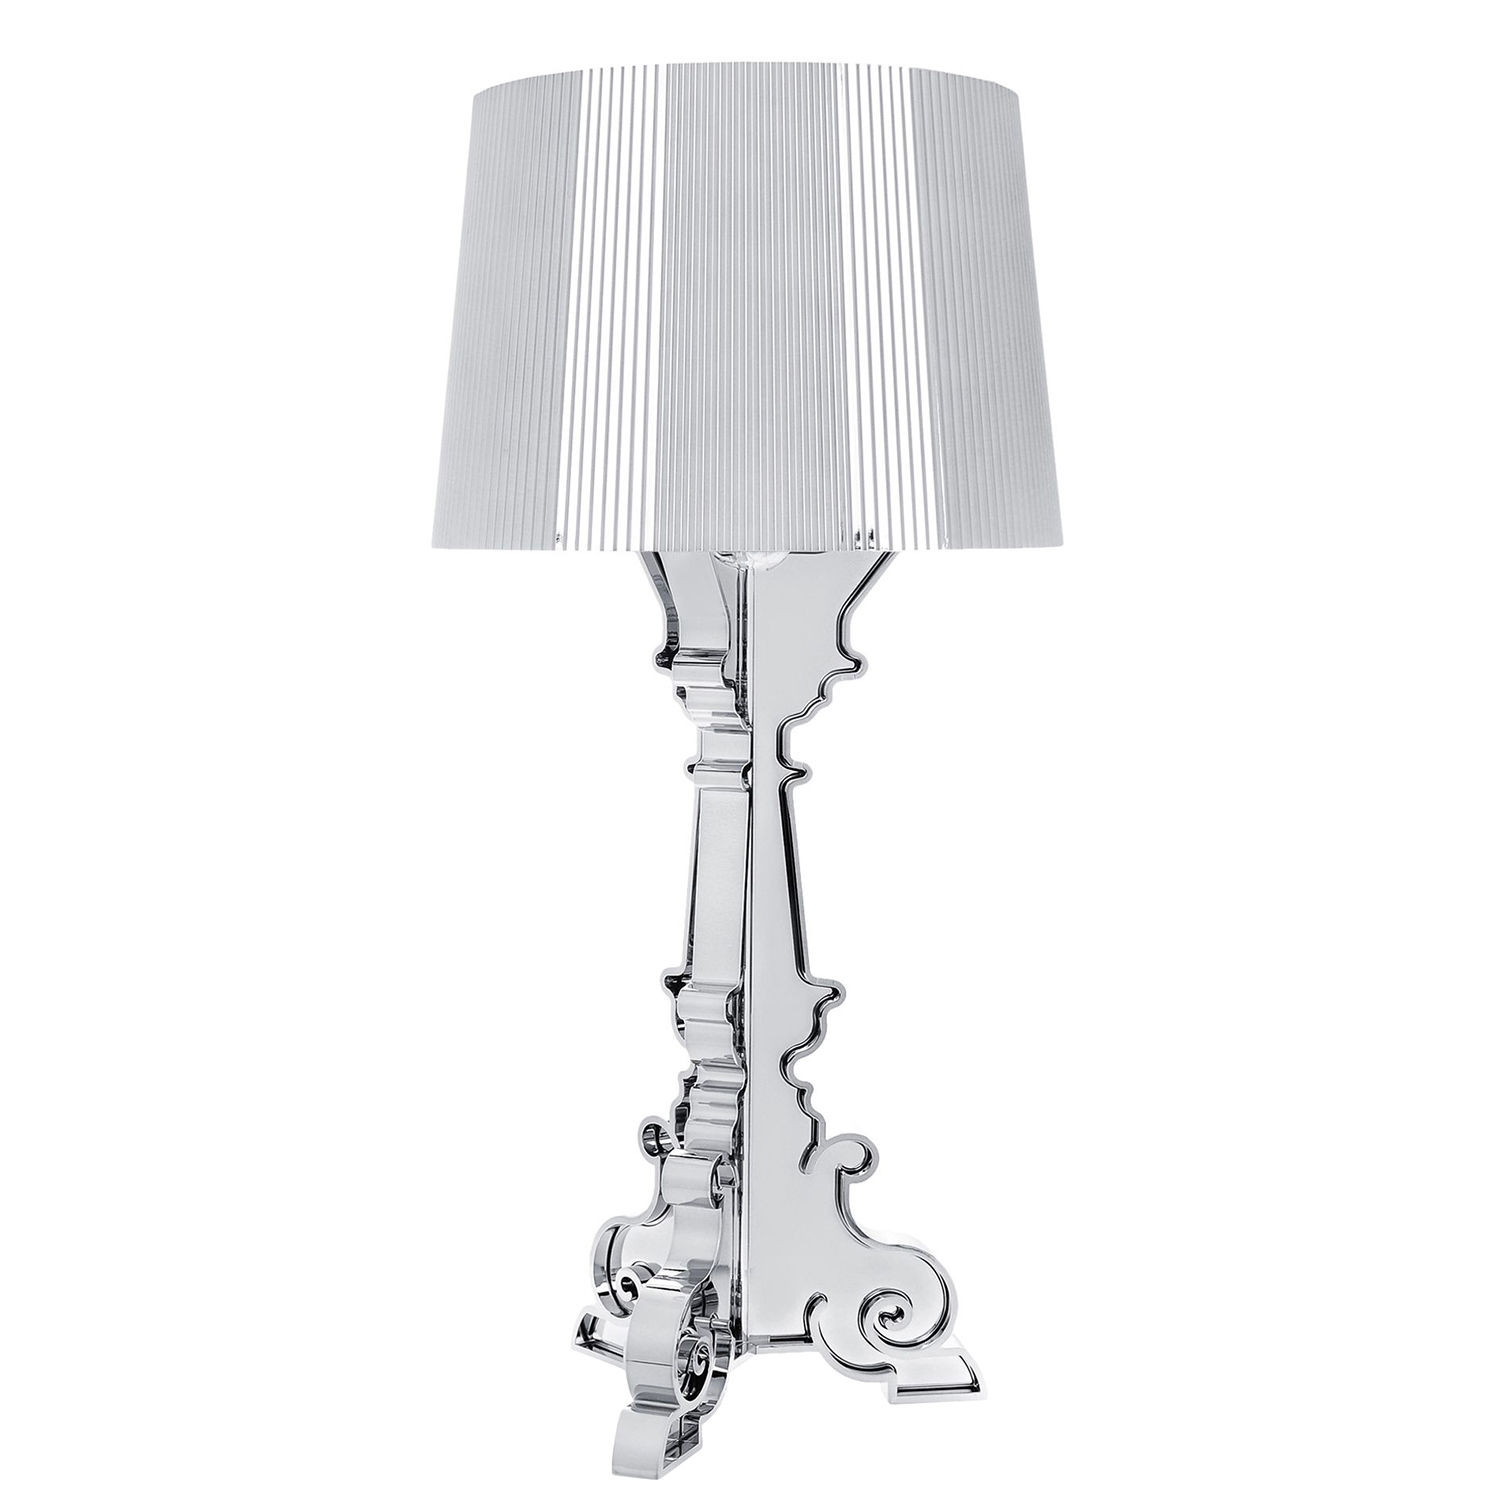 OUTLET - Bourgie tafellamp Kartell chroom